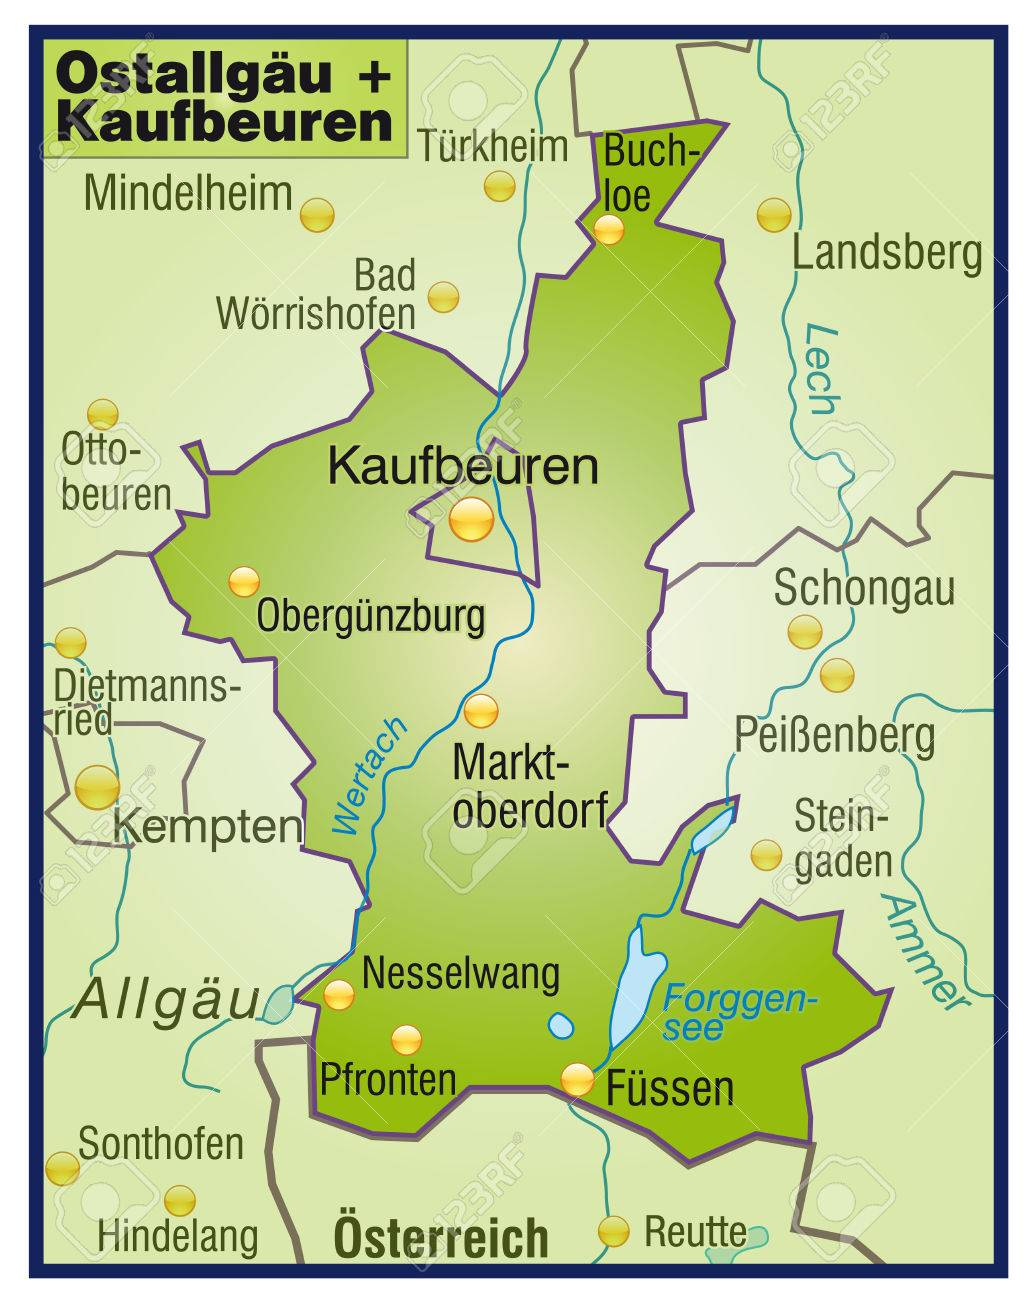 Map Of Ostallgaeu Kaufbeuren As An Overview Map In Green Royalty